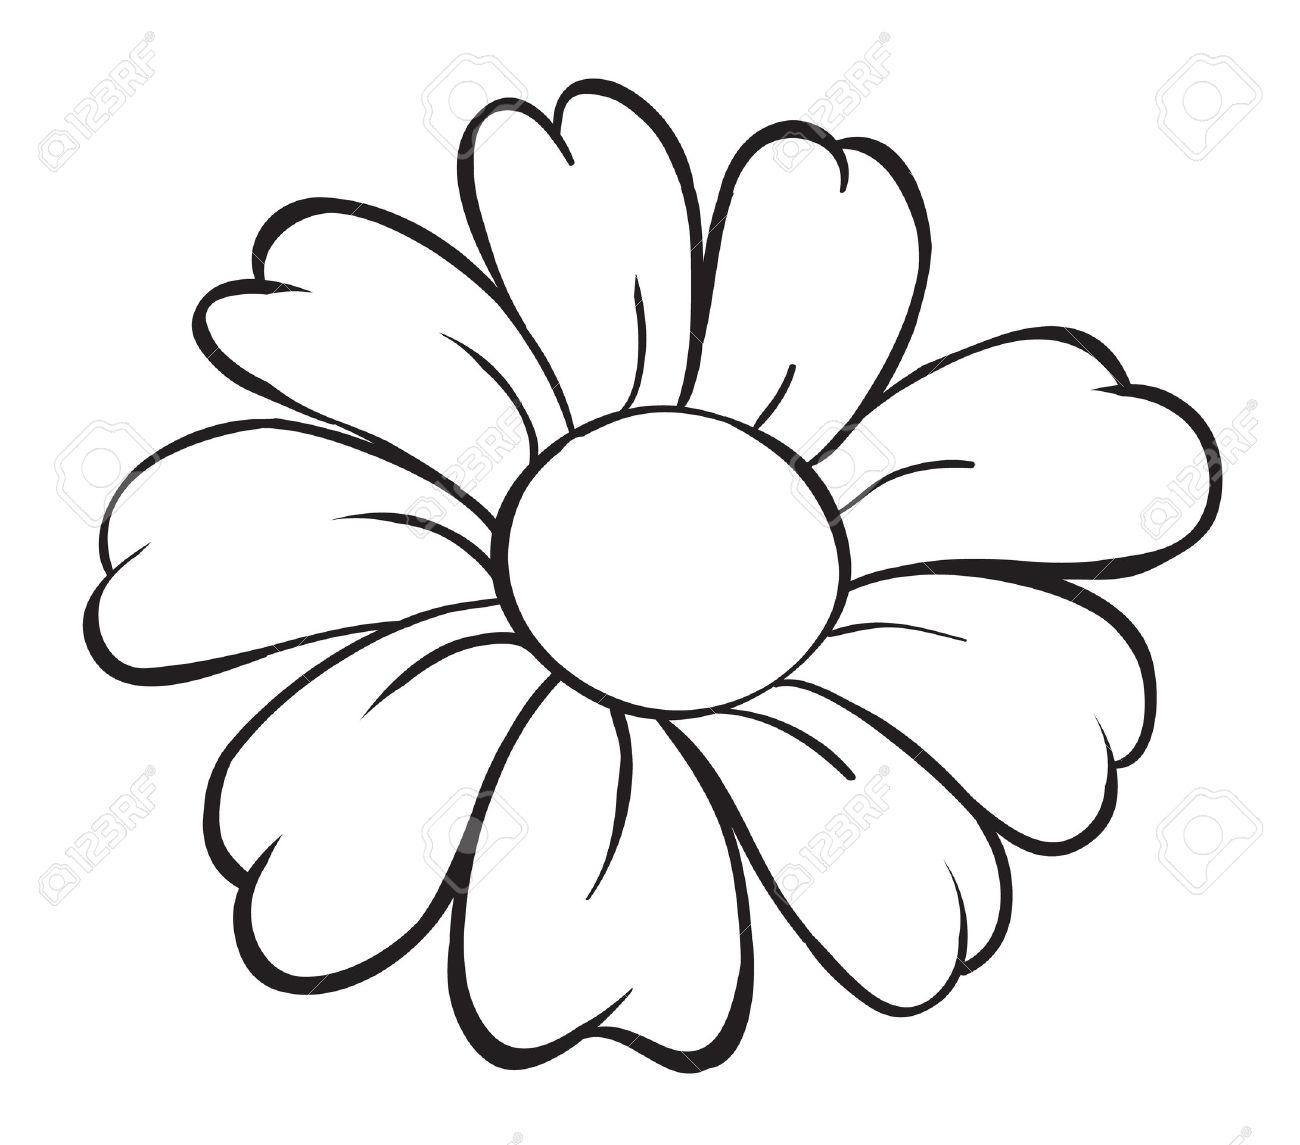 Illustration Of Flower Sketch On White Background Royalty Free